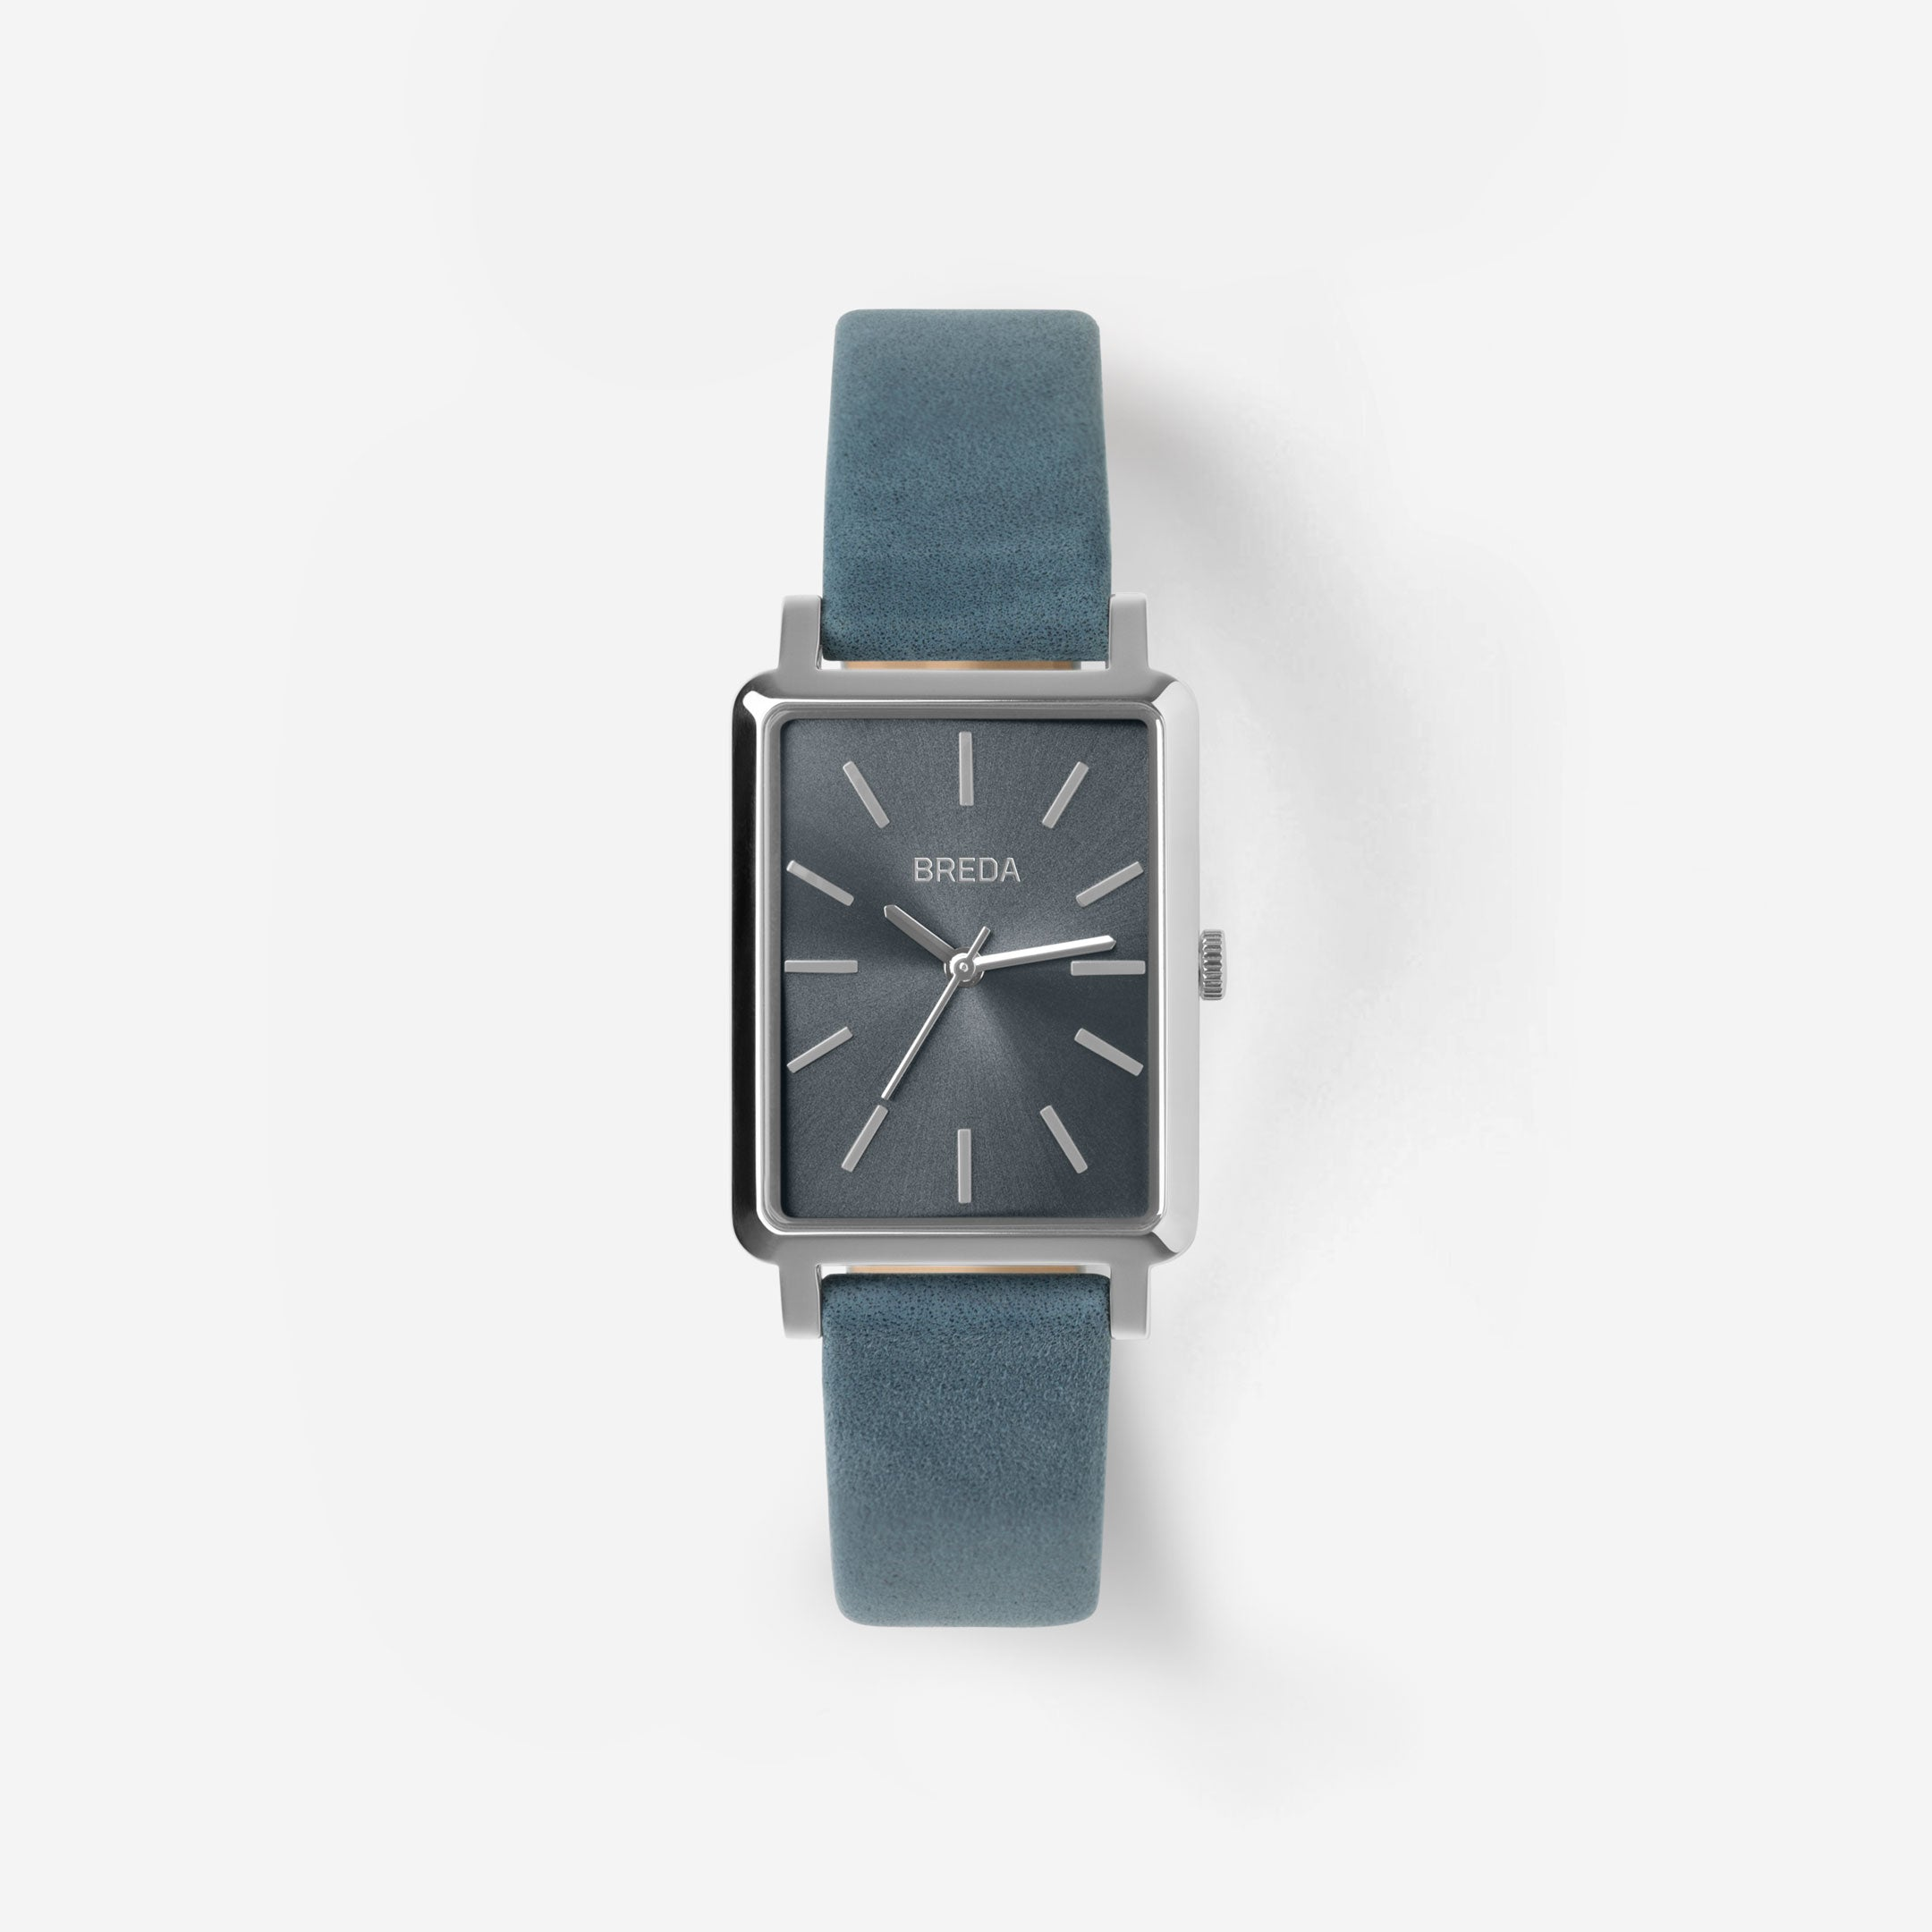 //cdn.shopify.com/s/files/1/0879/6650/products/breda-baer-1729o-silver-blue-leather-watch-front_1024x1024.jpg?v=1543253846